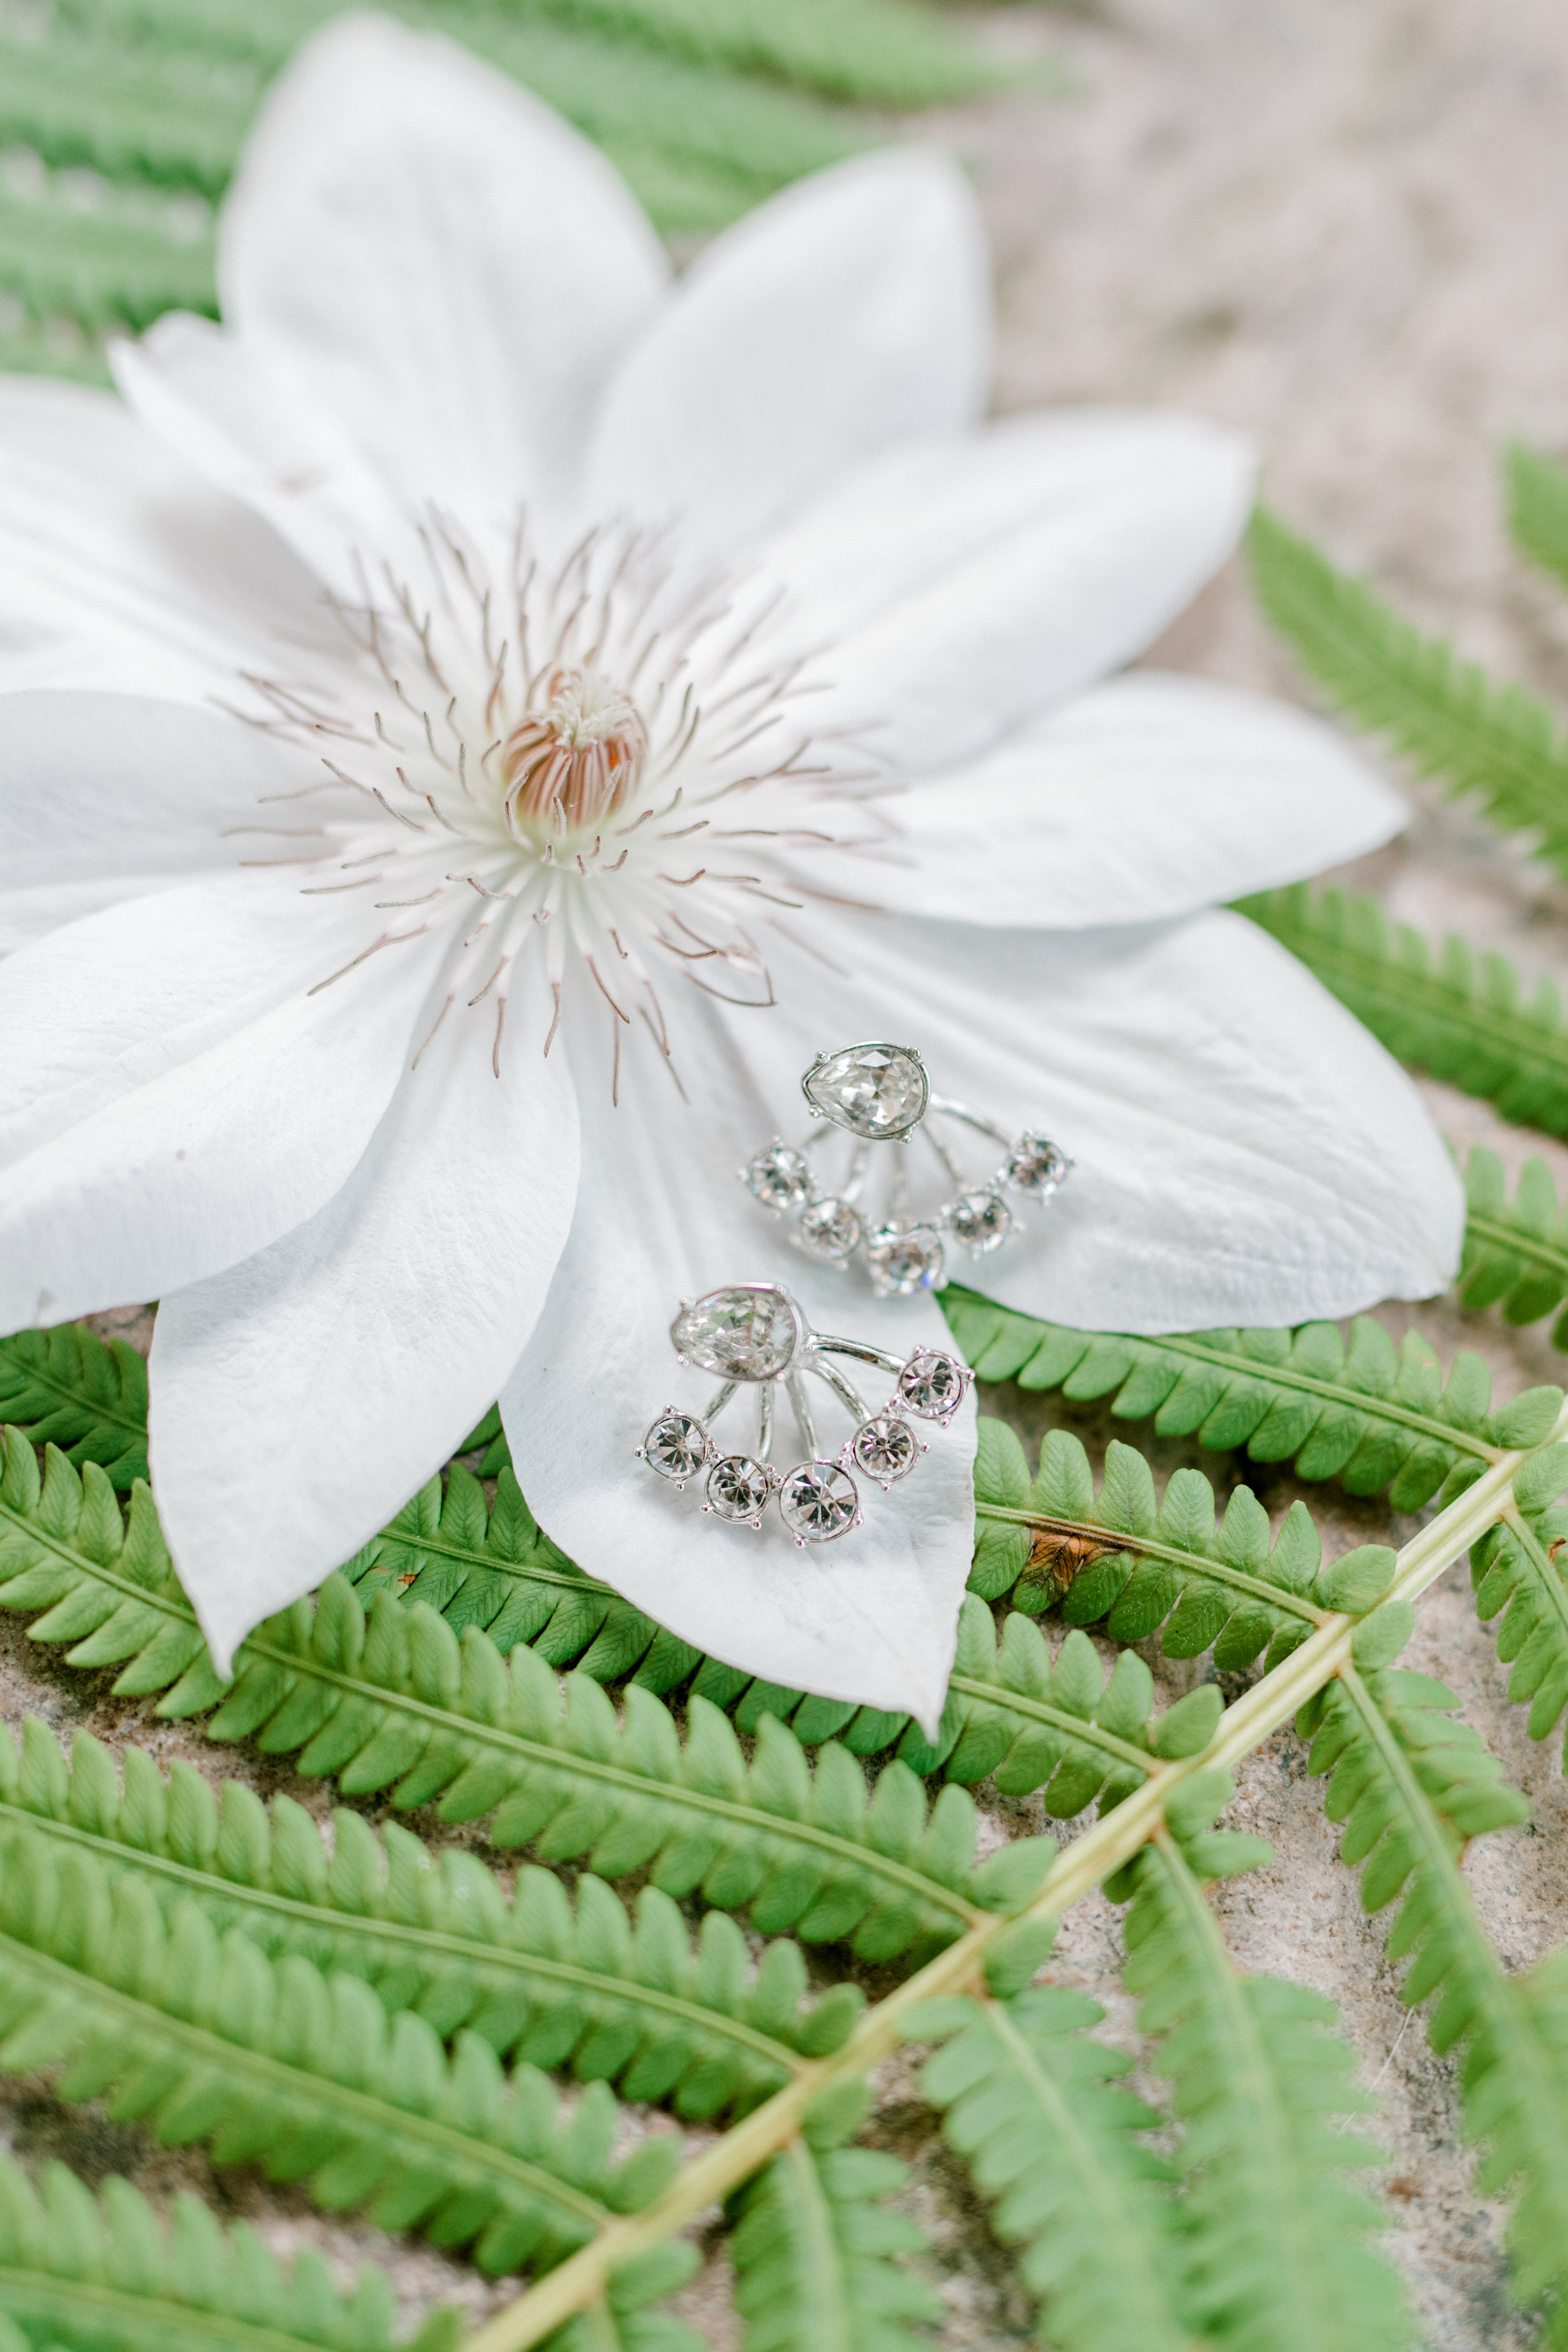 haley-richter-photography-summer-vineyard-wedding-givenchy-earrings-diamond-silver-floater-illusion-star-burst-jewelry